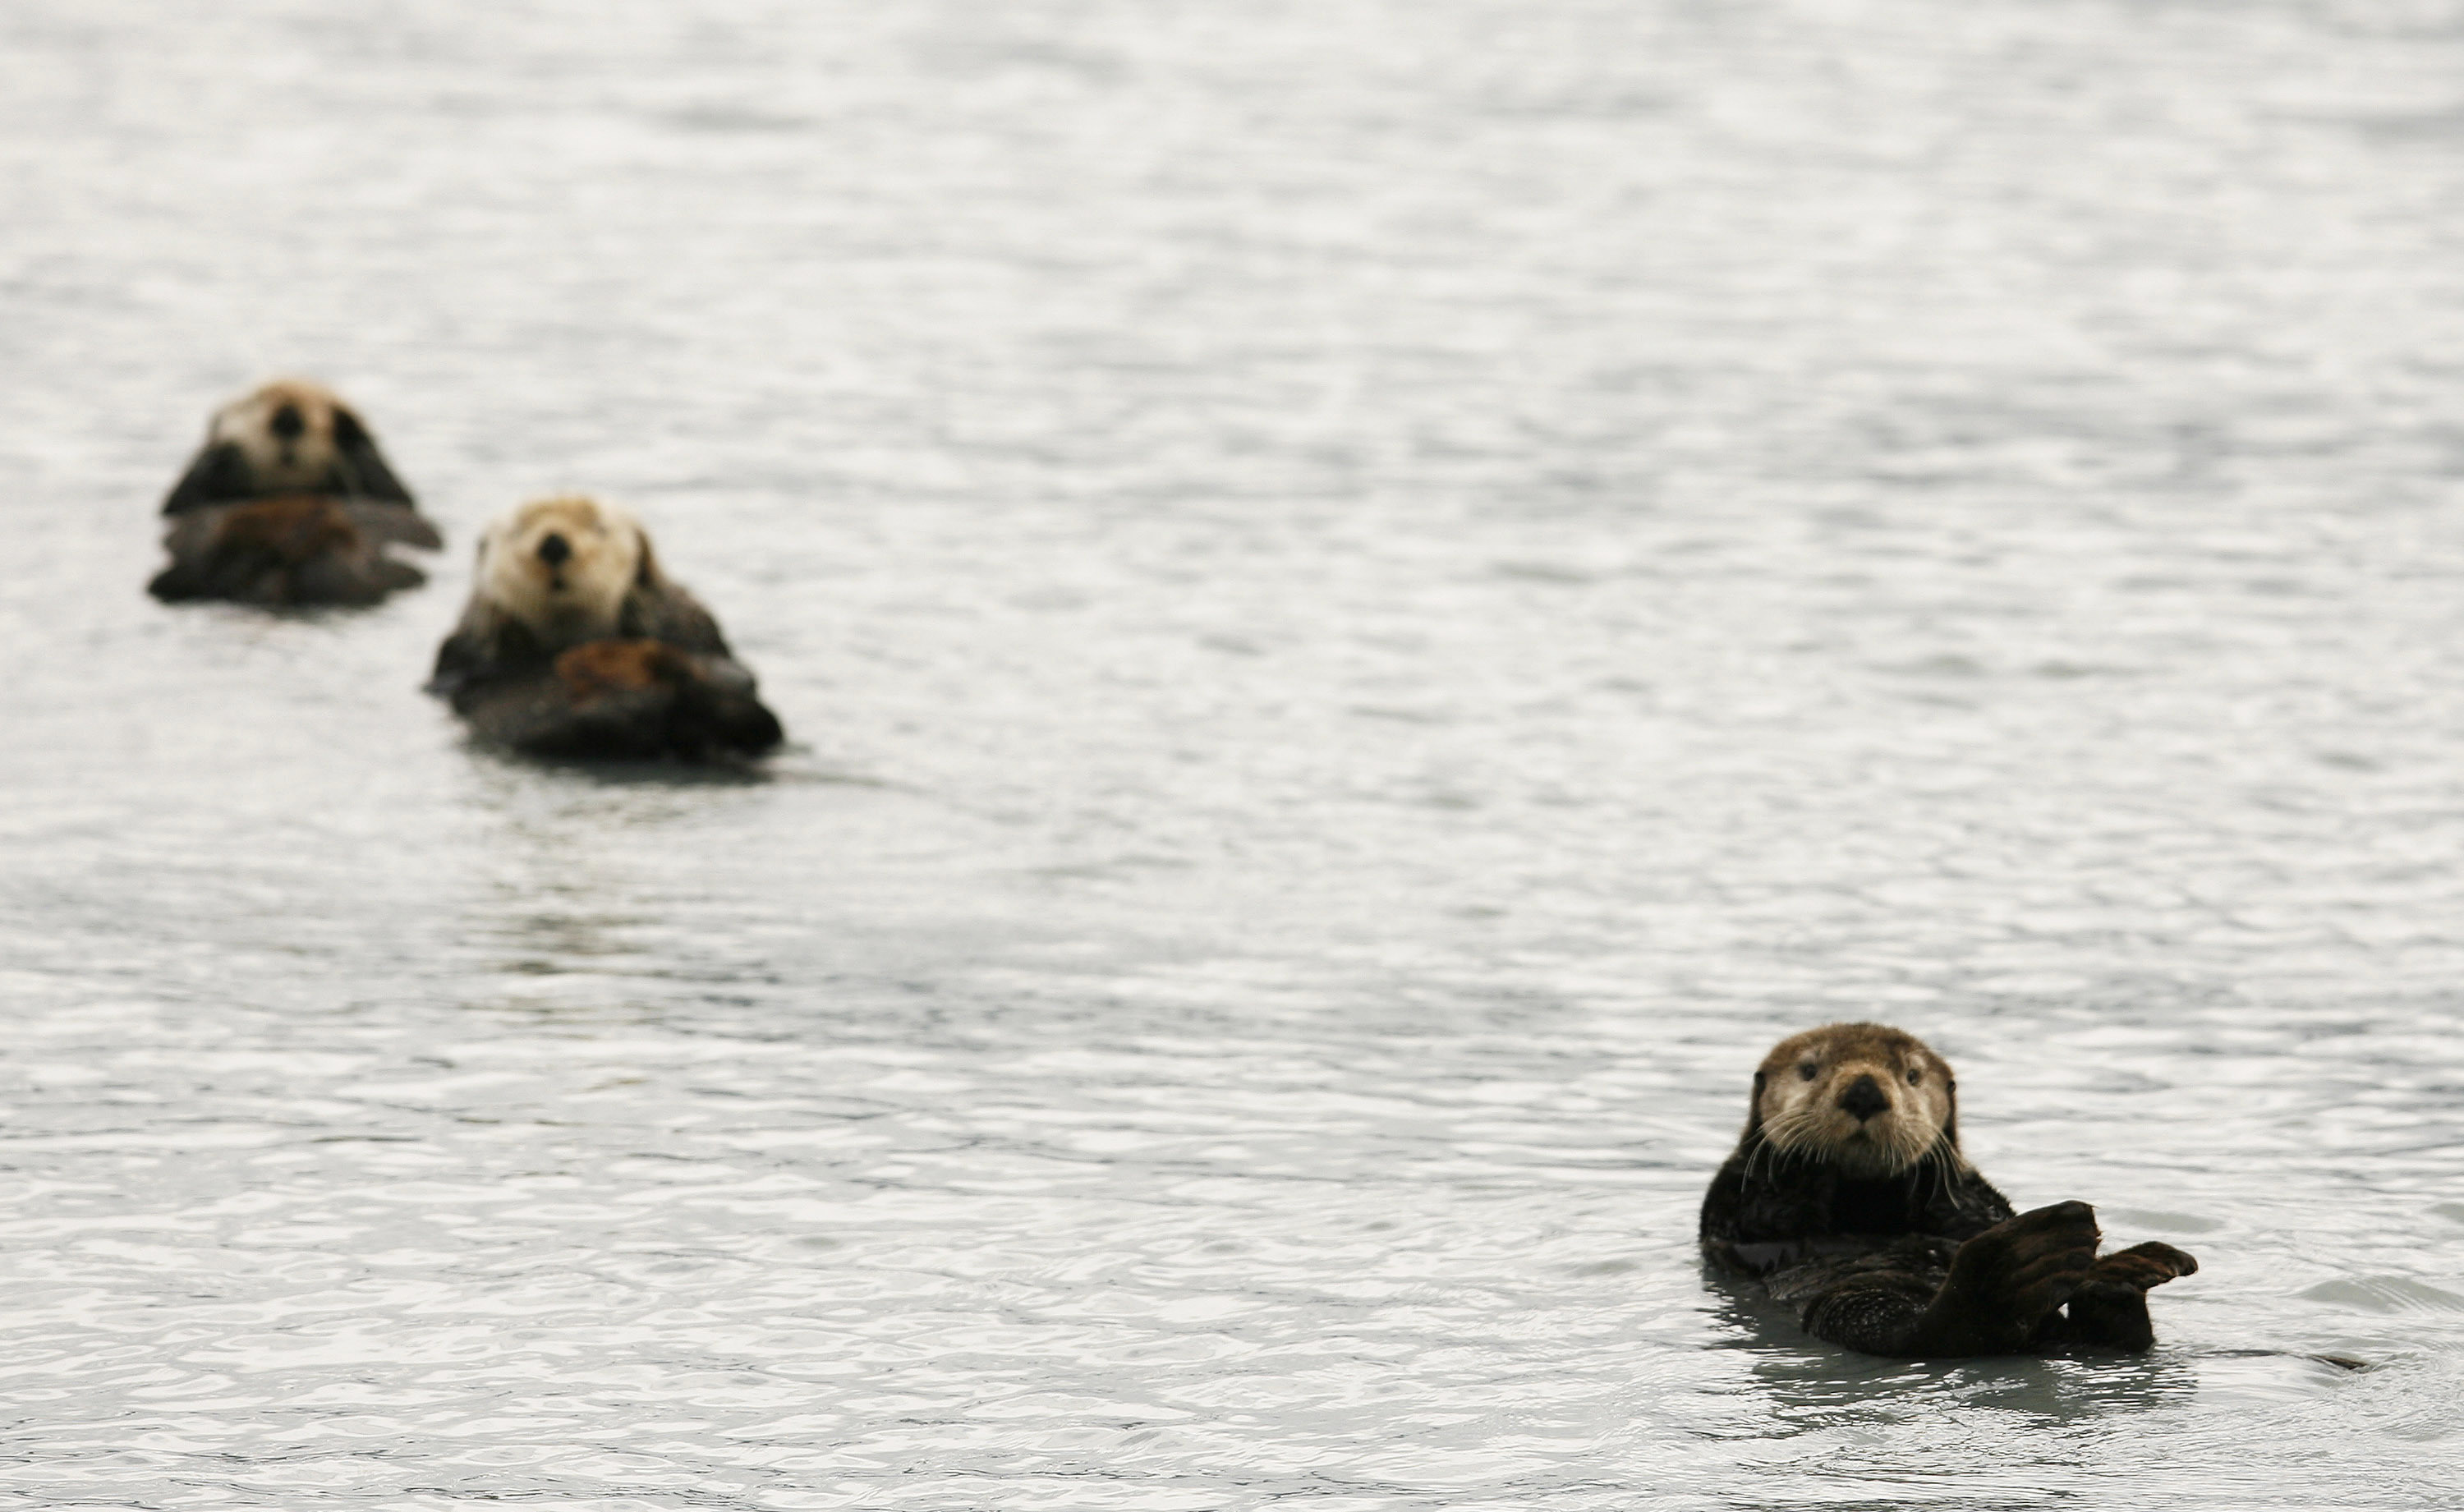 Sea otters float on their backs in the waters of Prince William Sound near the town of Valdez, Alaska